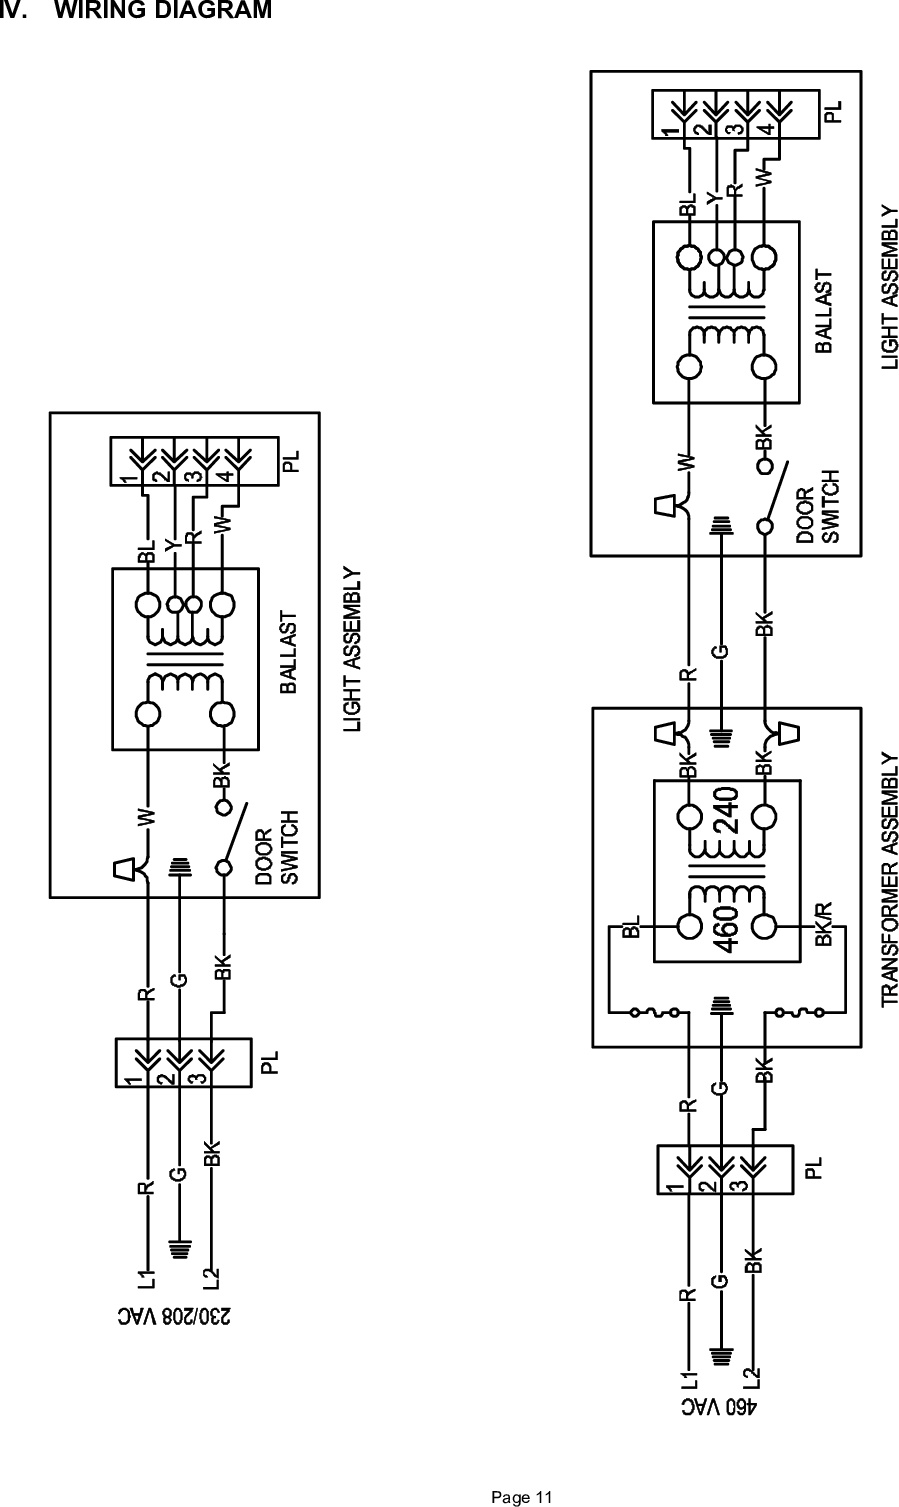 Bard Wuvclp C 46441700 Uv B Inst Sheet Rev A 10 03 User Manual To Wiring Diagrams Page 12 Of